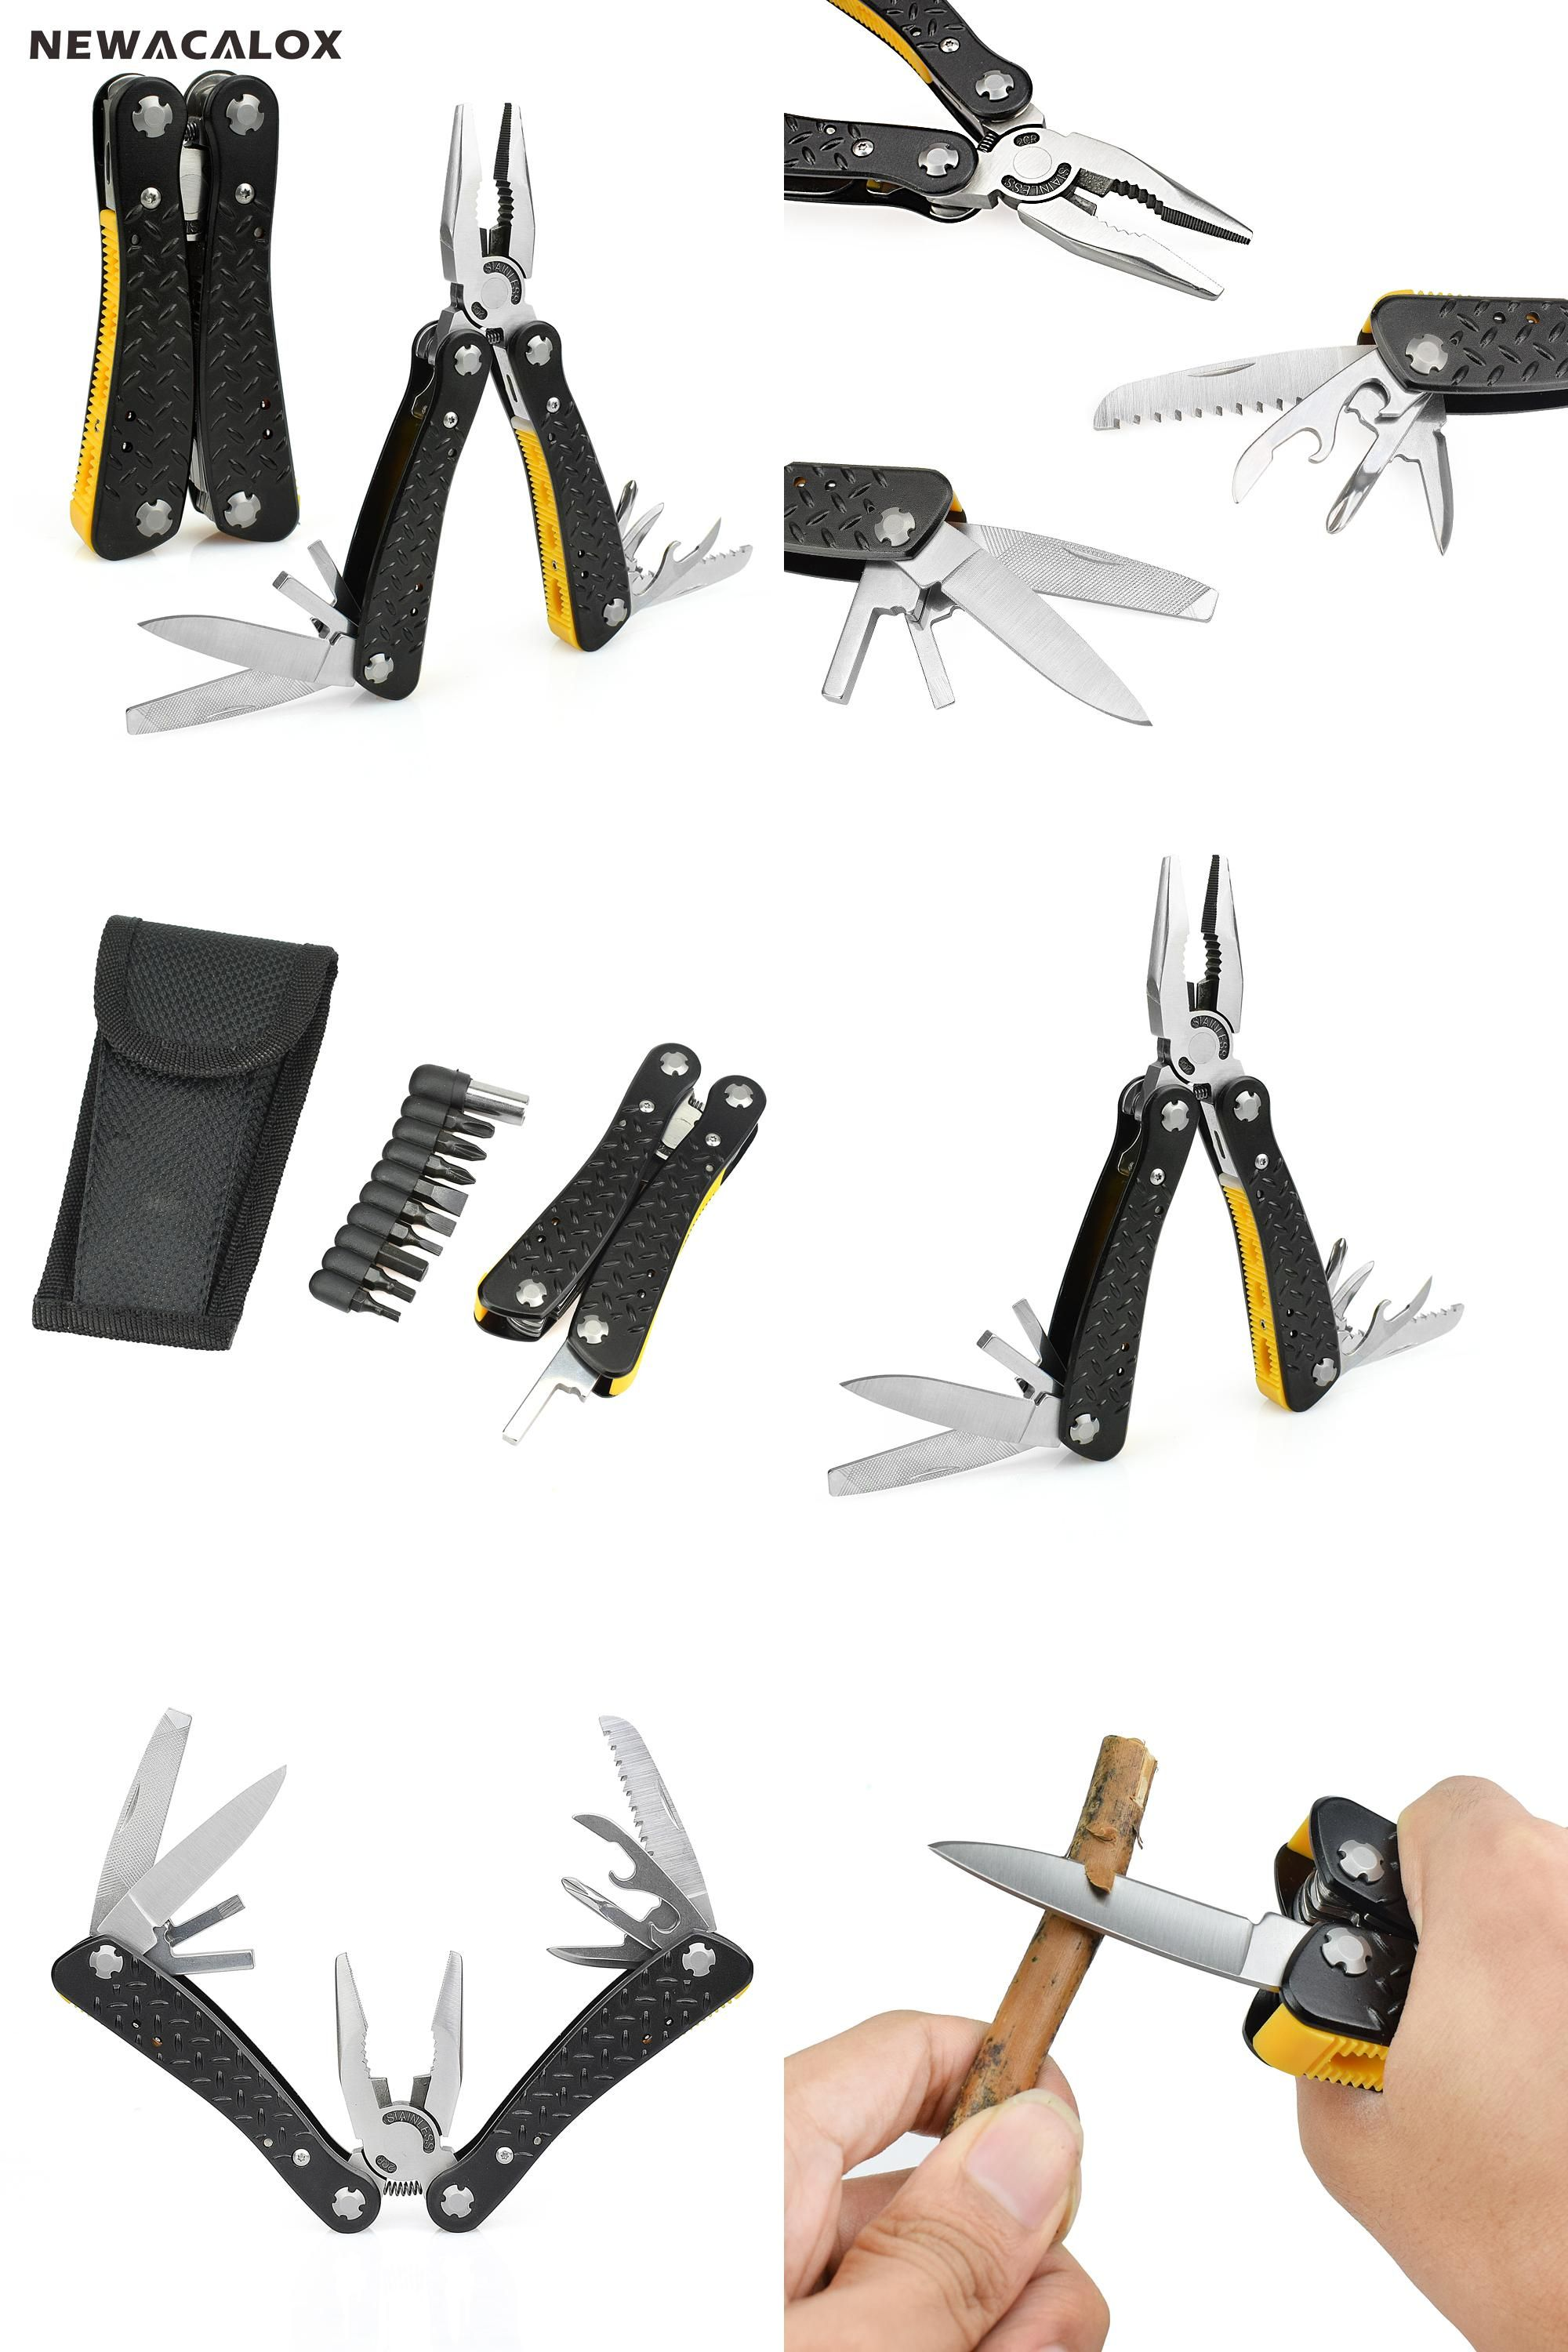 NEW Pocket Screwdriver Pliers Outdoor Survival Camping Multi-function Tool Set